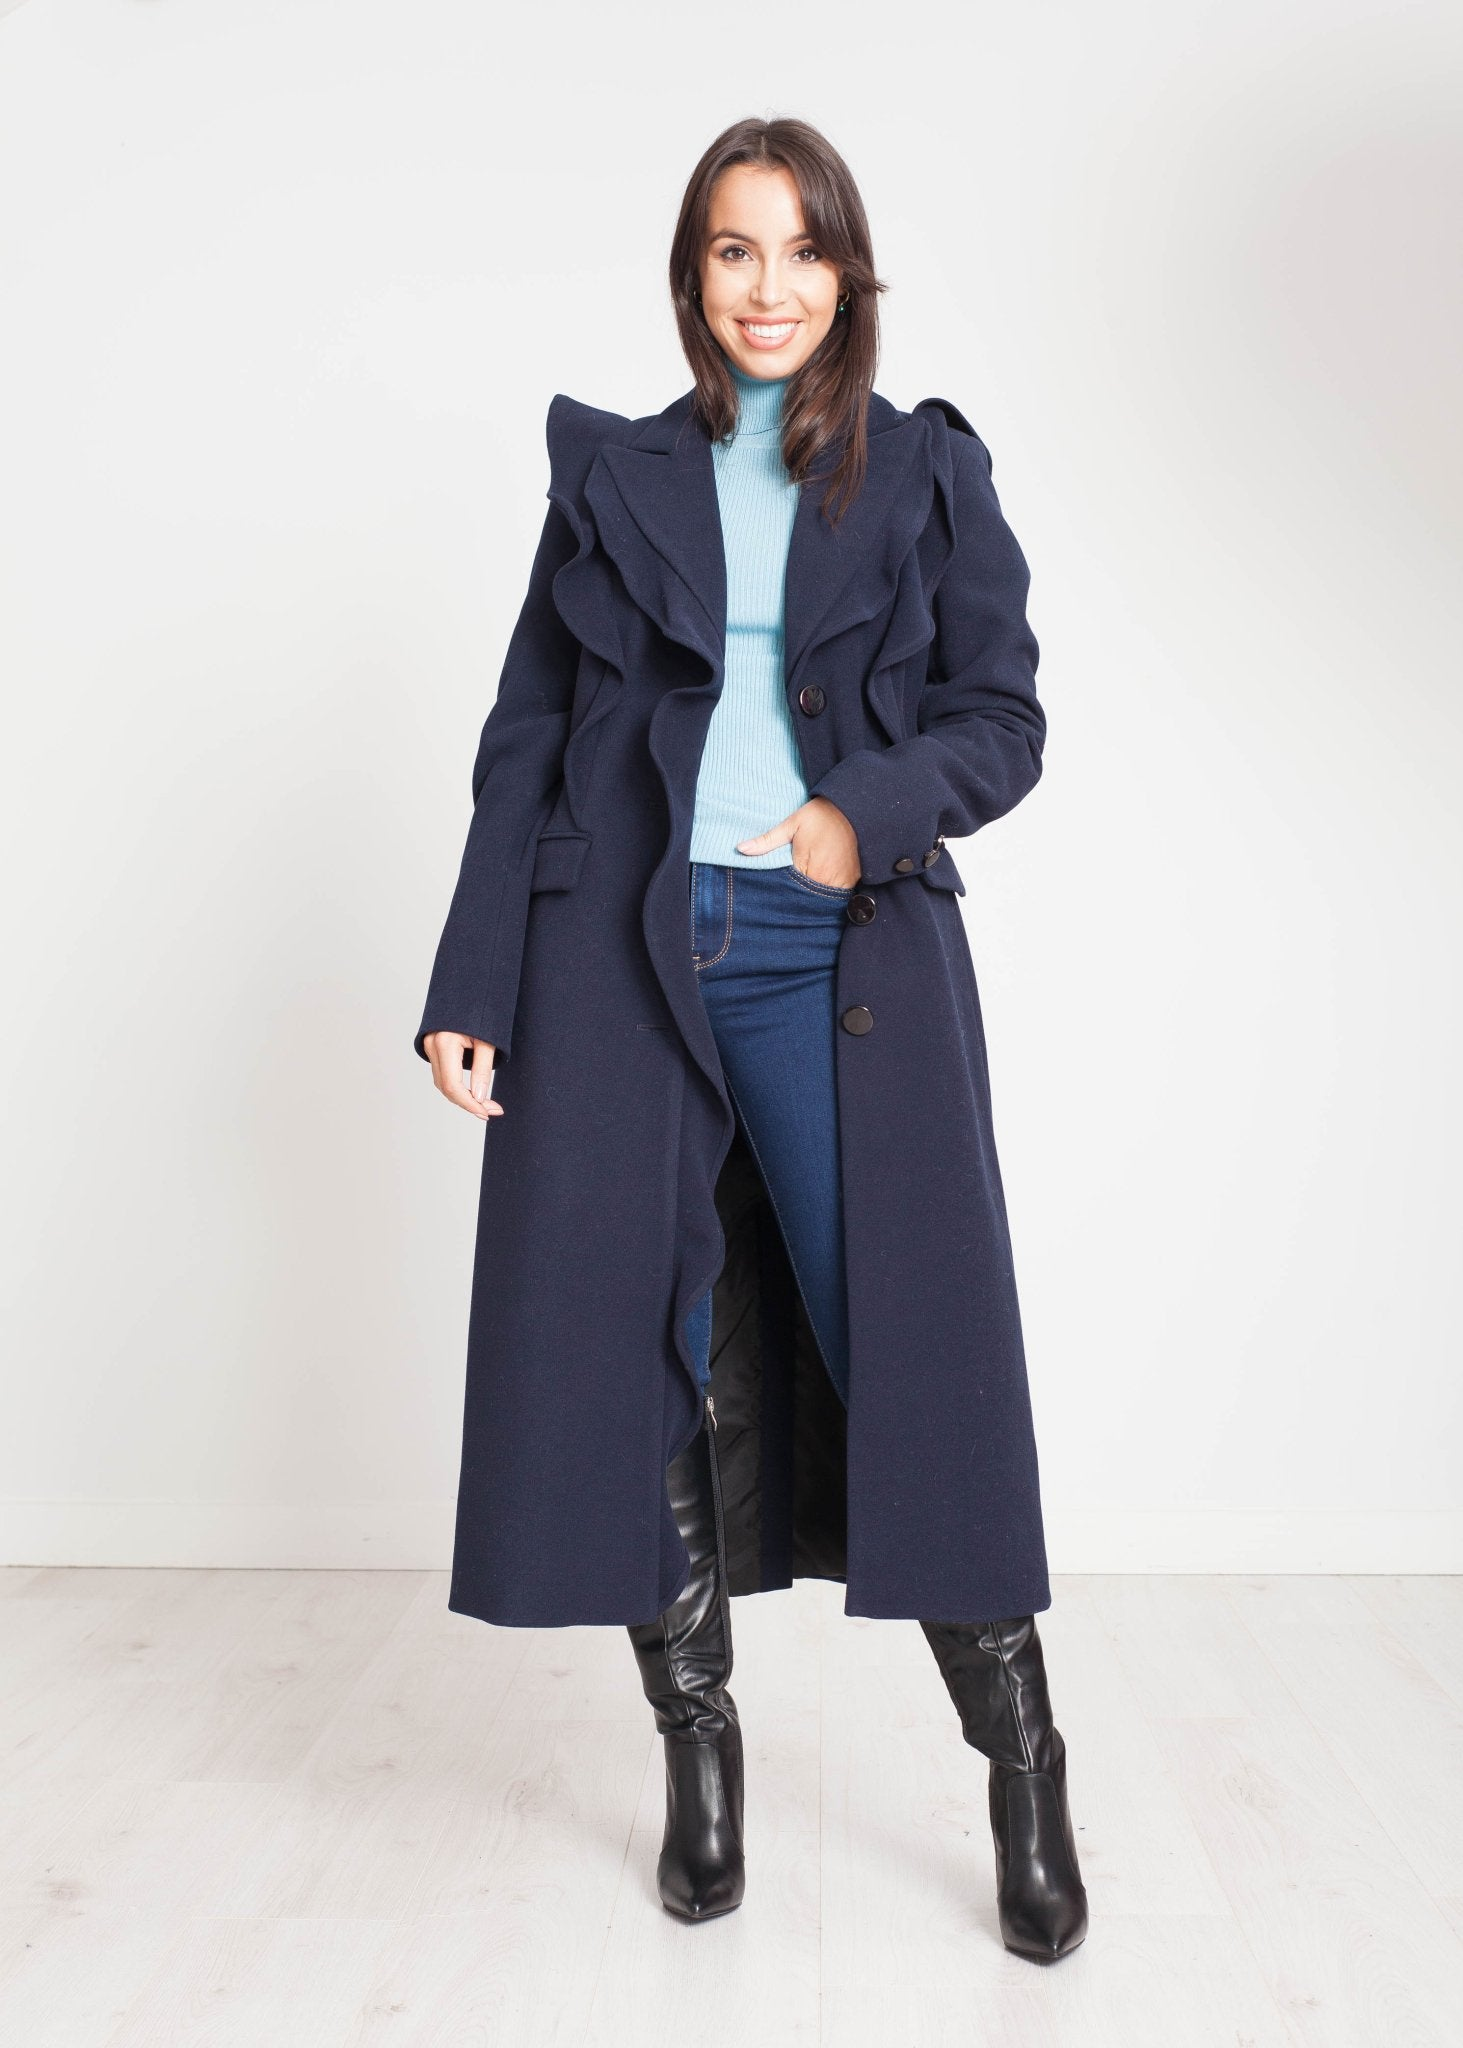 Alana Frill Detail Coat In Navy - The Walk in Wardrobe